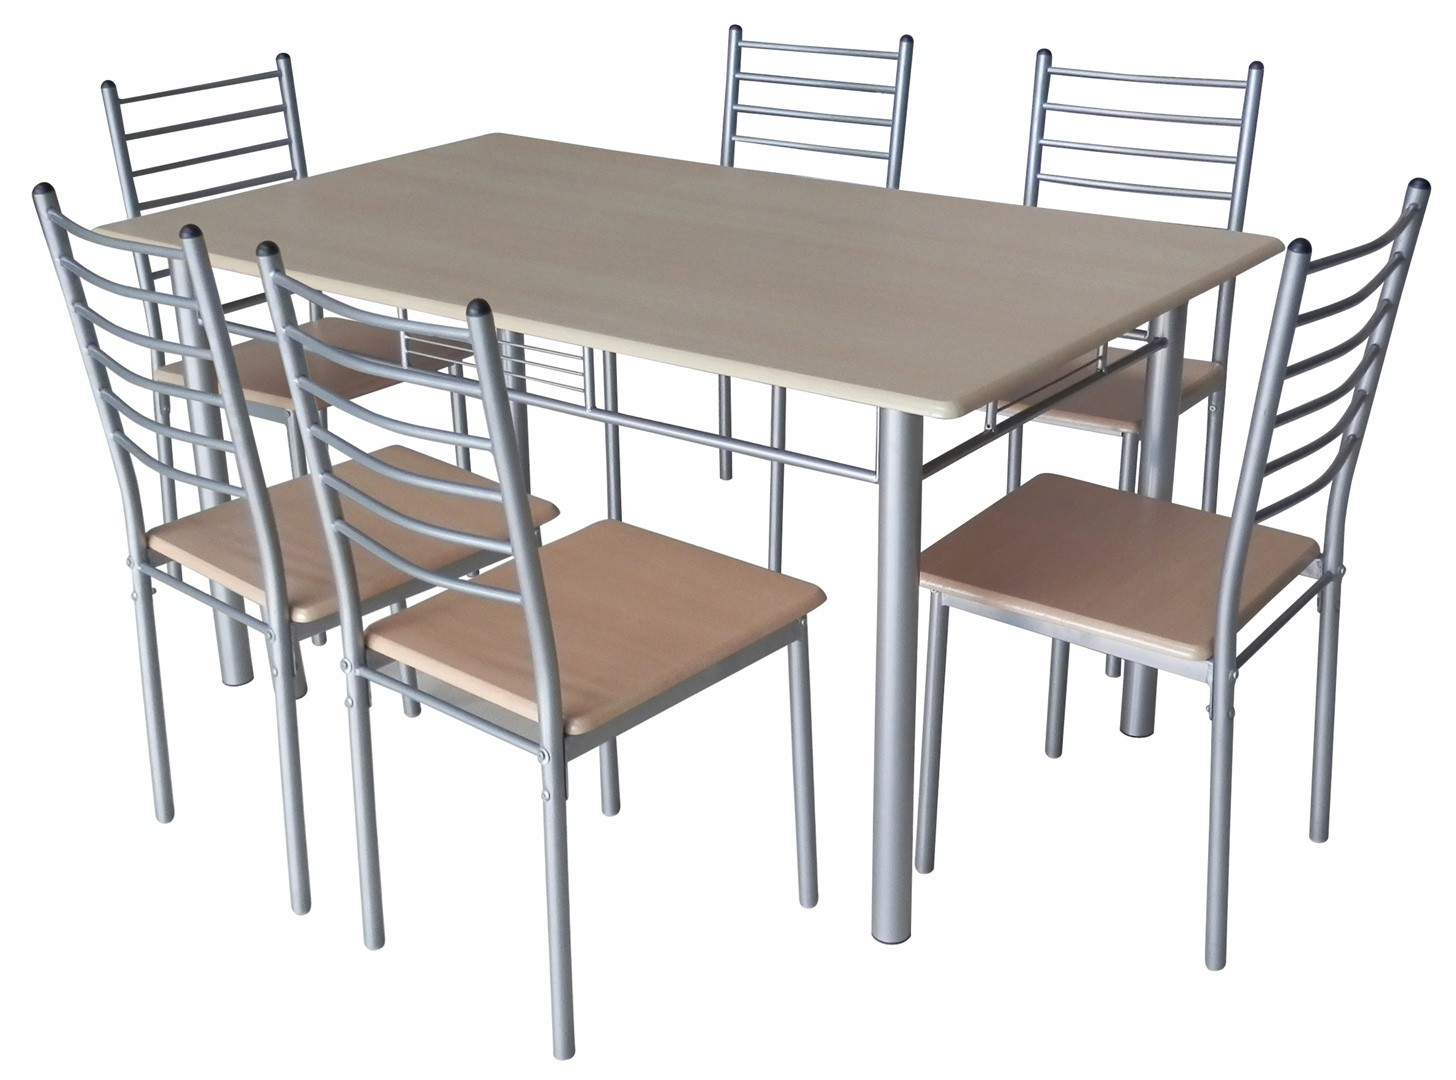 Ensemble table et chaises de cuisine but chaise id es de d coration de ma - Ensemble table et chaises ...